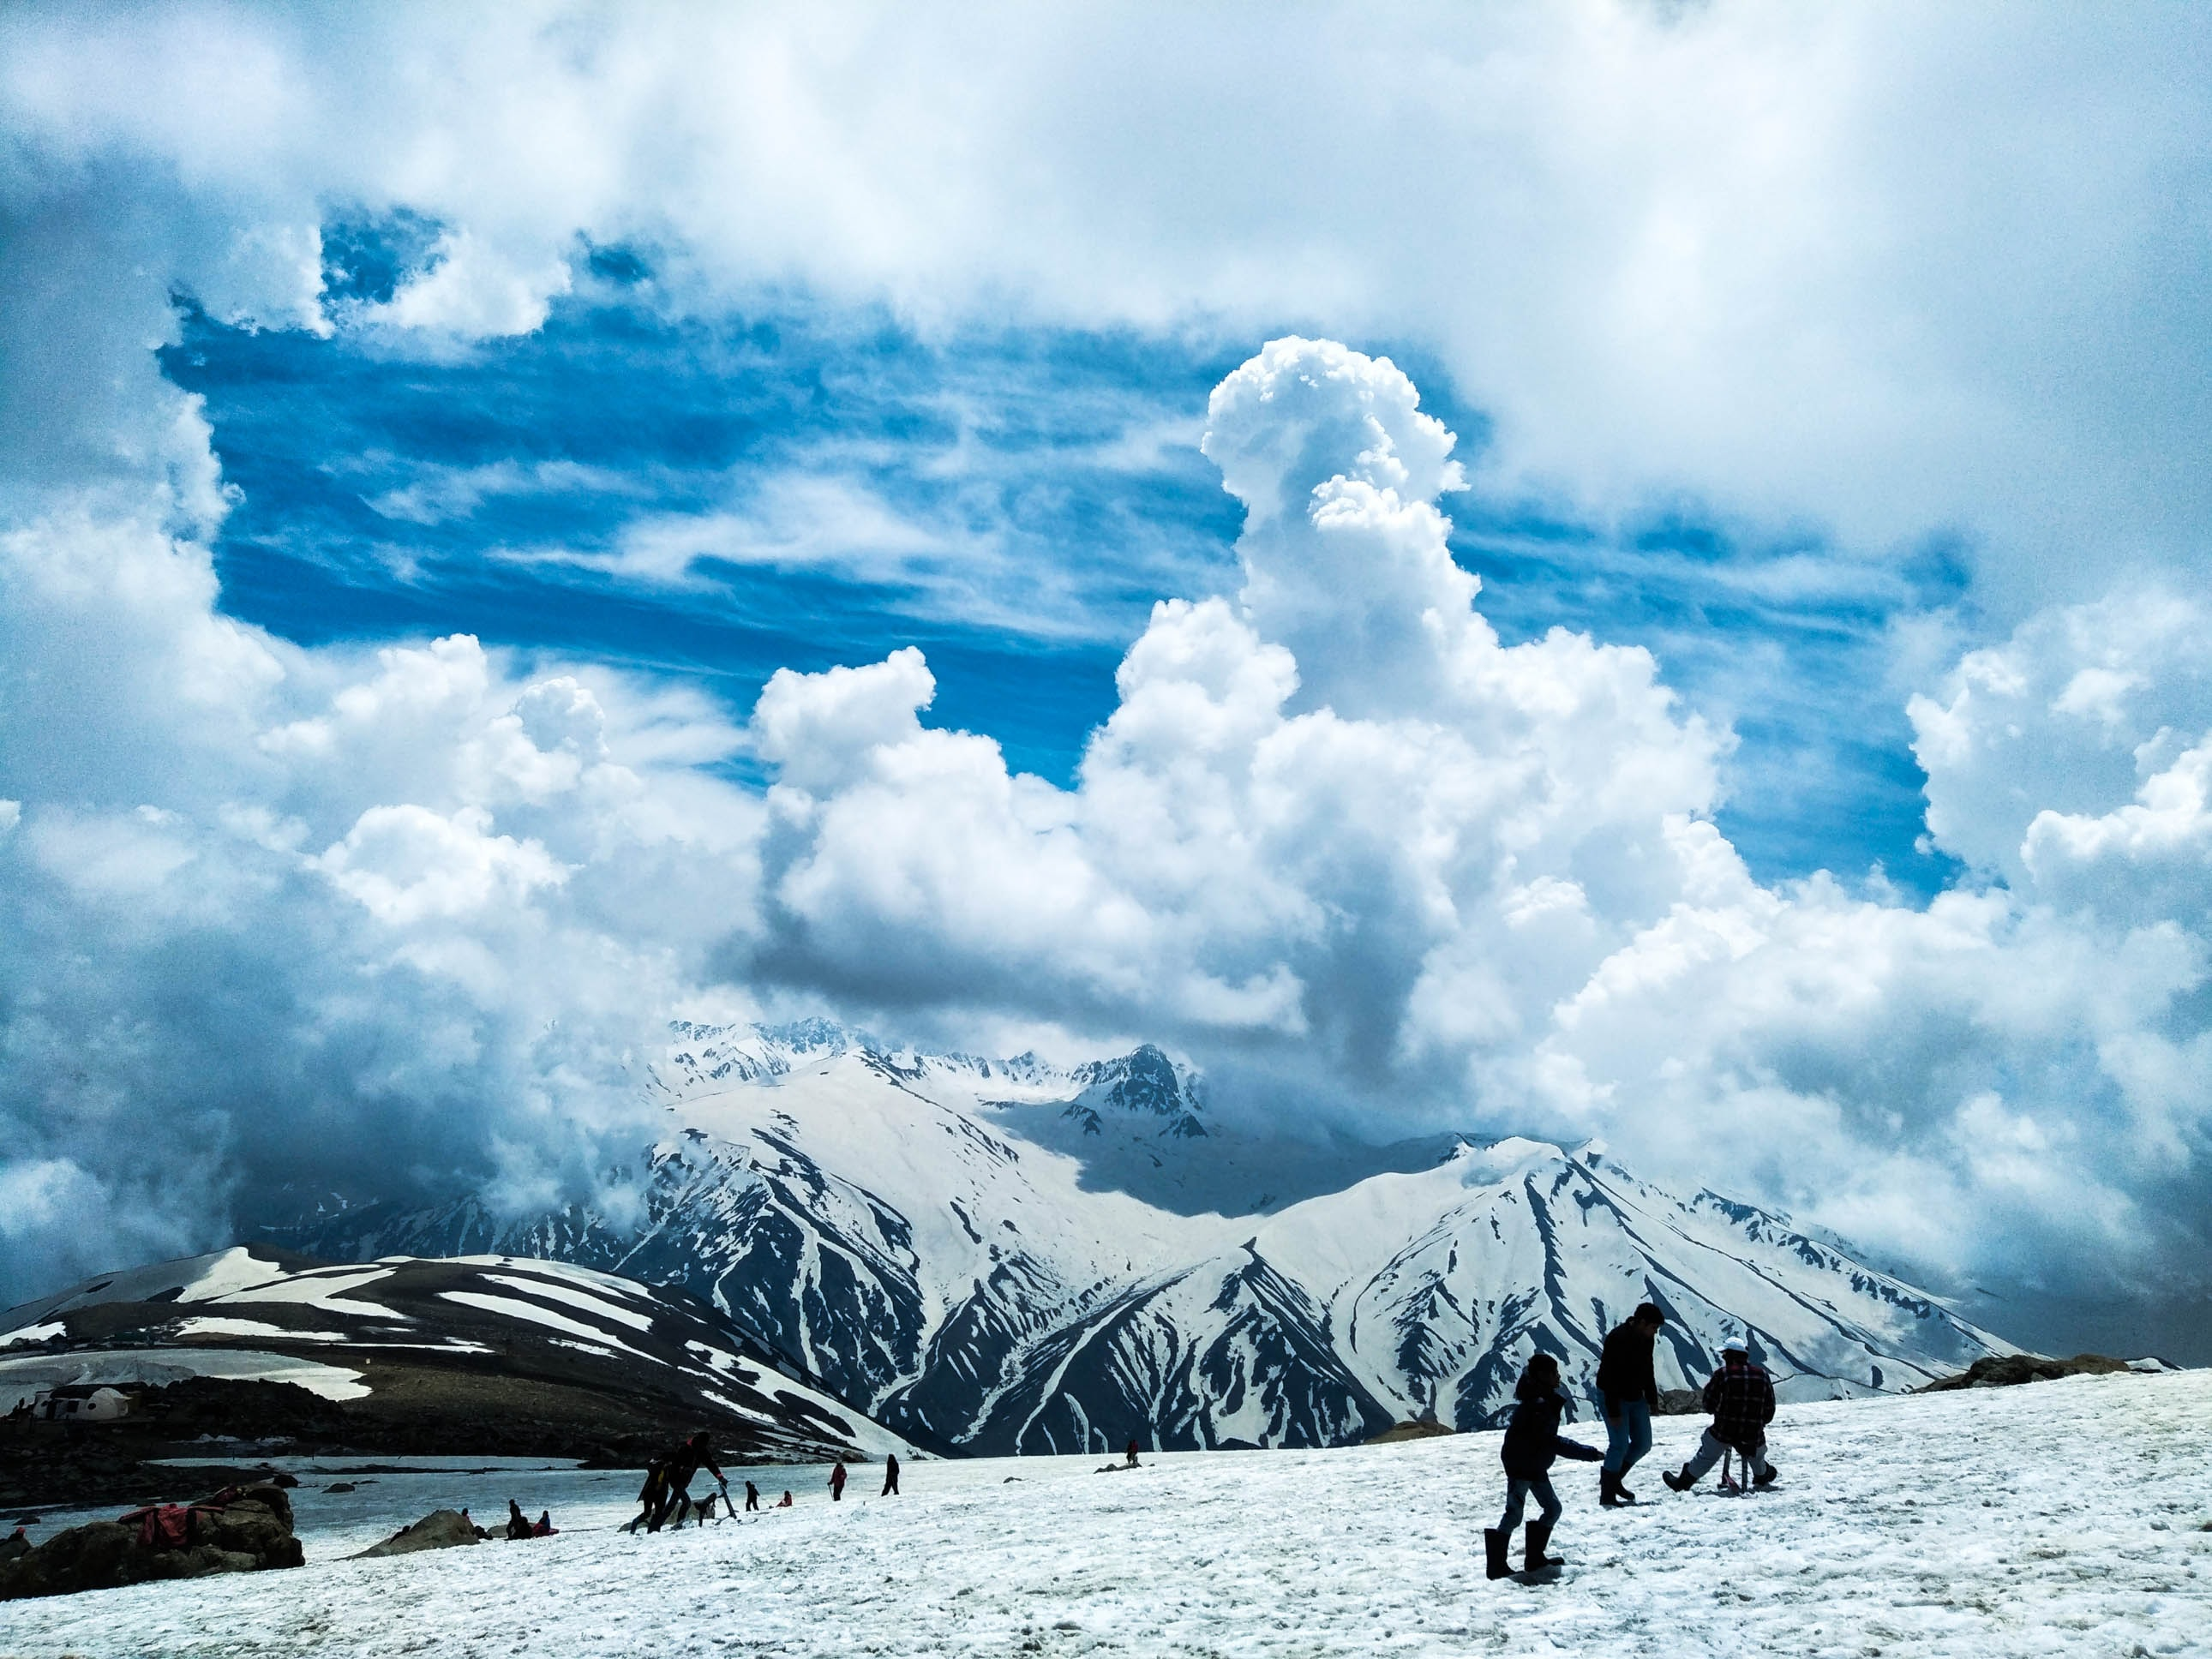 Groups of hikers in a snowy field near a snowy mountain massif on a cloudy day